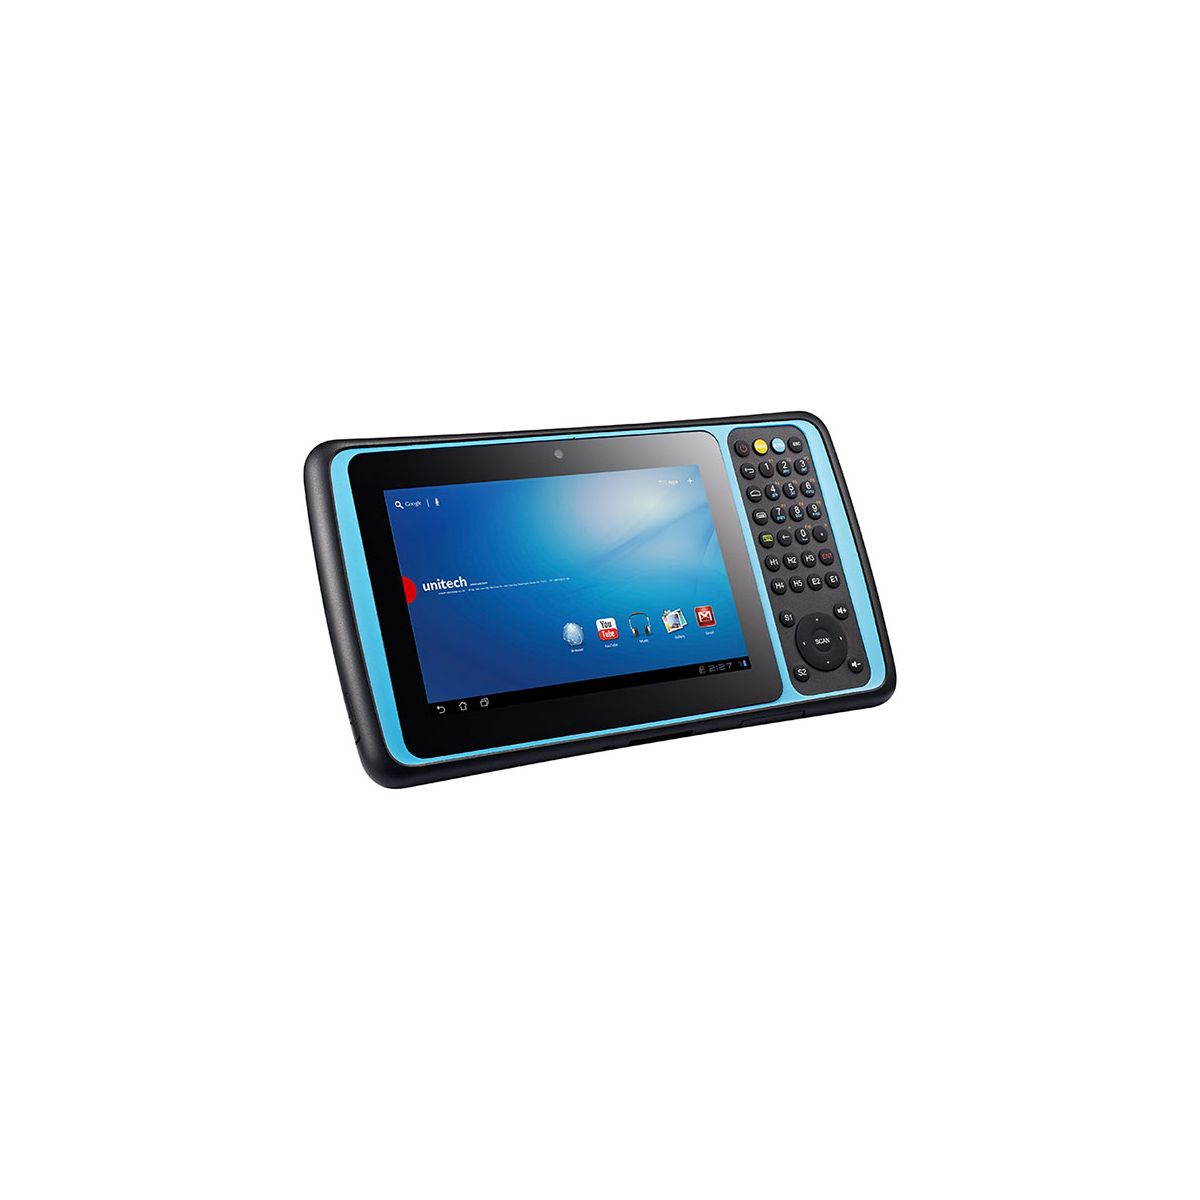 Tablet unitech TB120 HF/NFC, No Scan Engine, Android 4.3, Bluetooth, WiFi, 1D CCD, 2D Imager y 3.75G